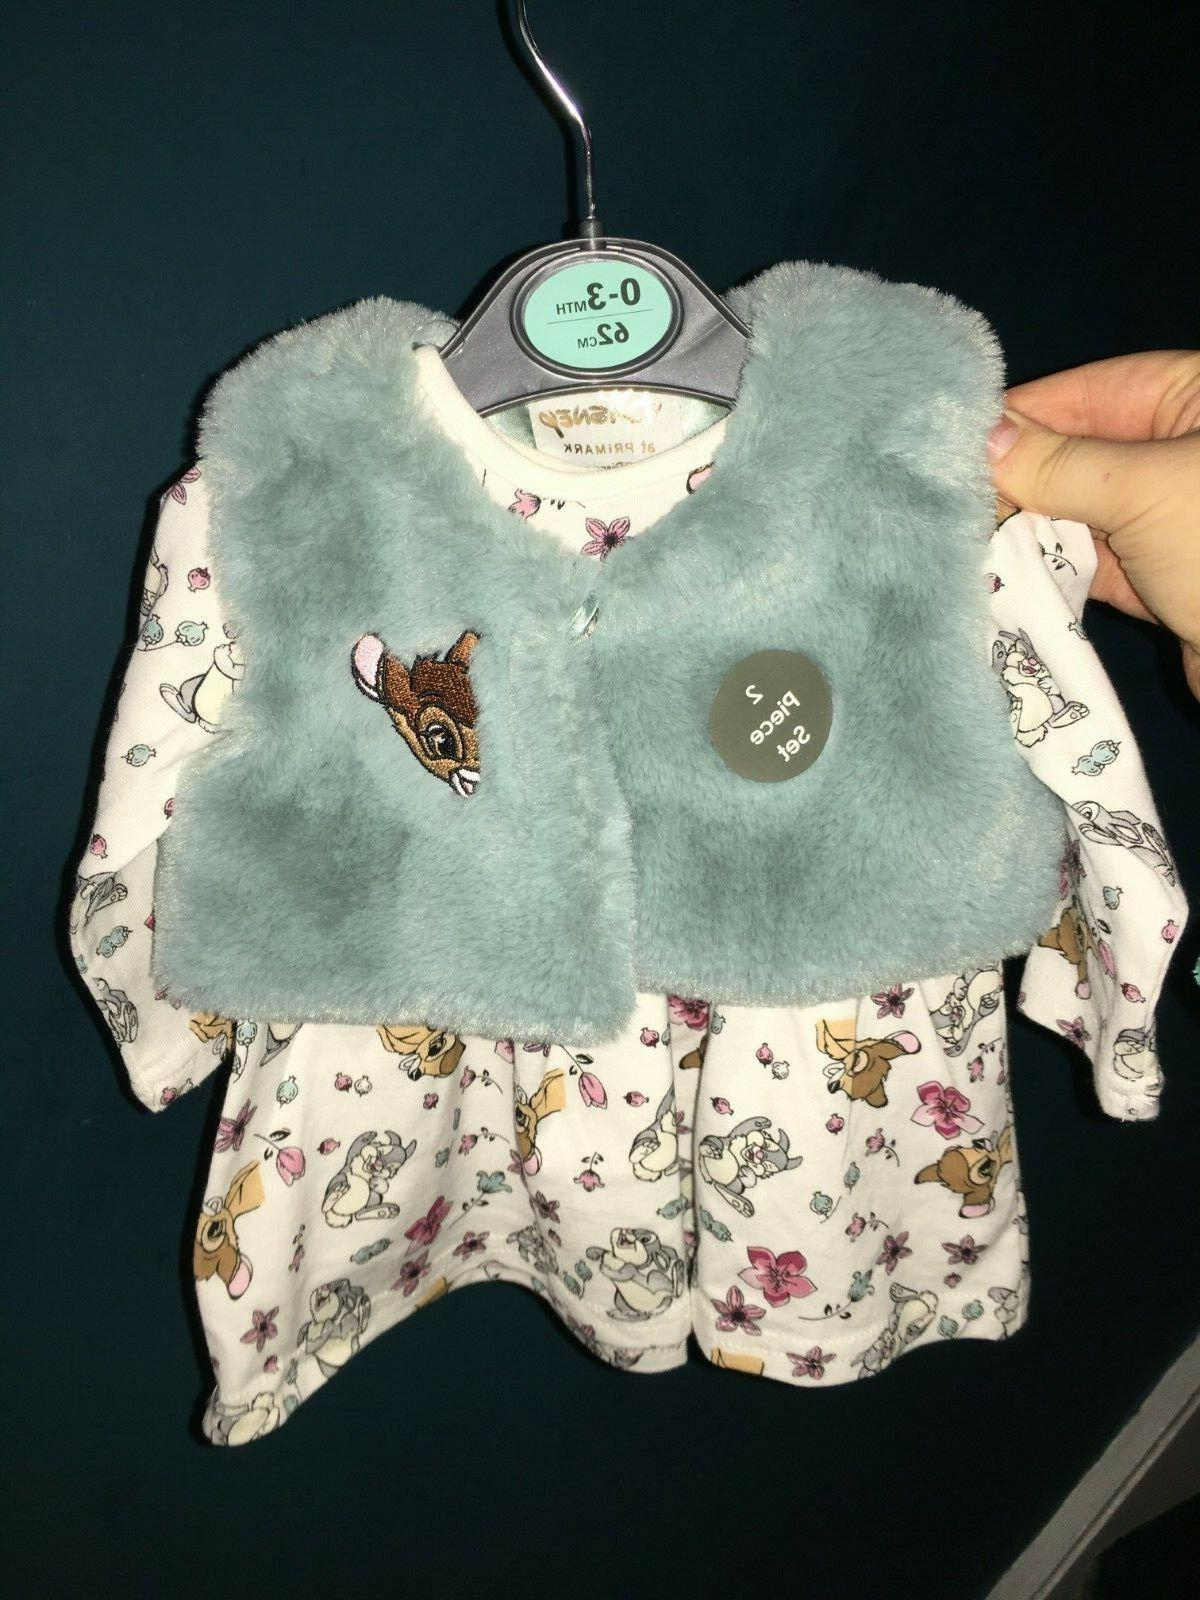 Primark Disney Bambi Clothing Outfit Bibs